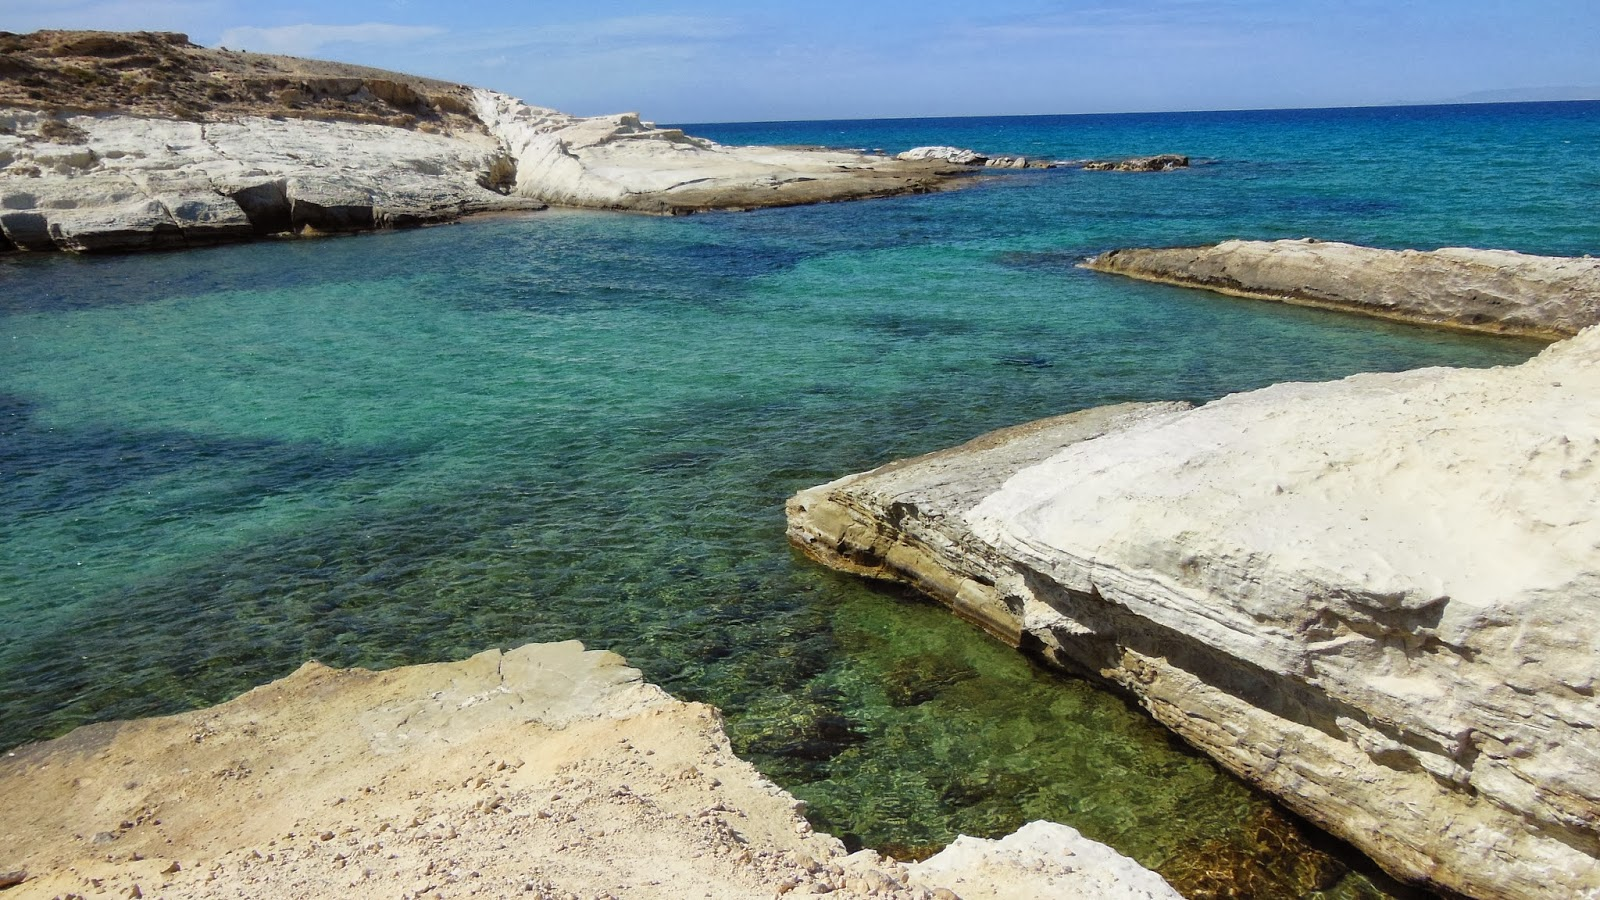 Travel in the nature: Milos best beaches tour